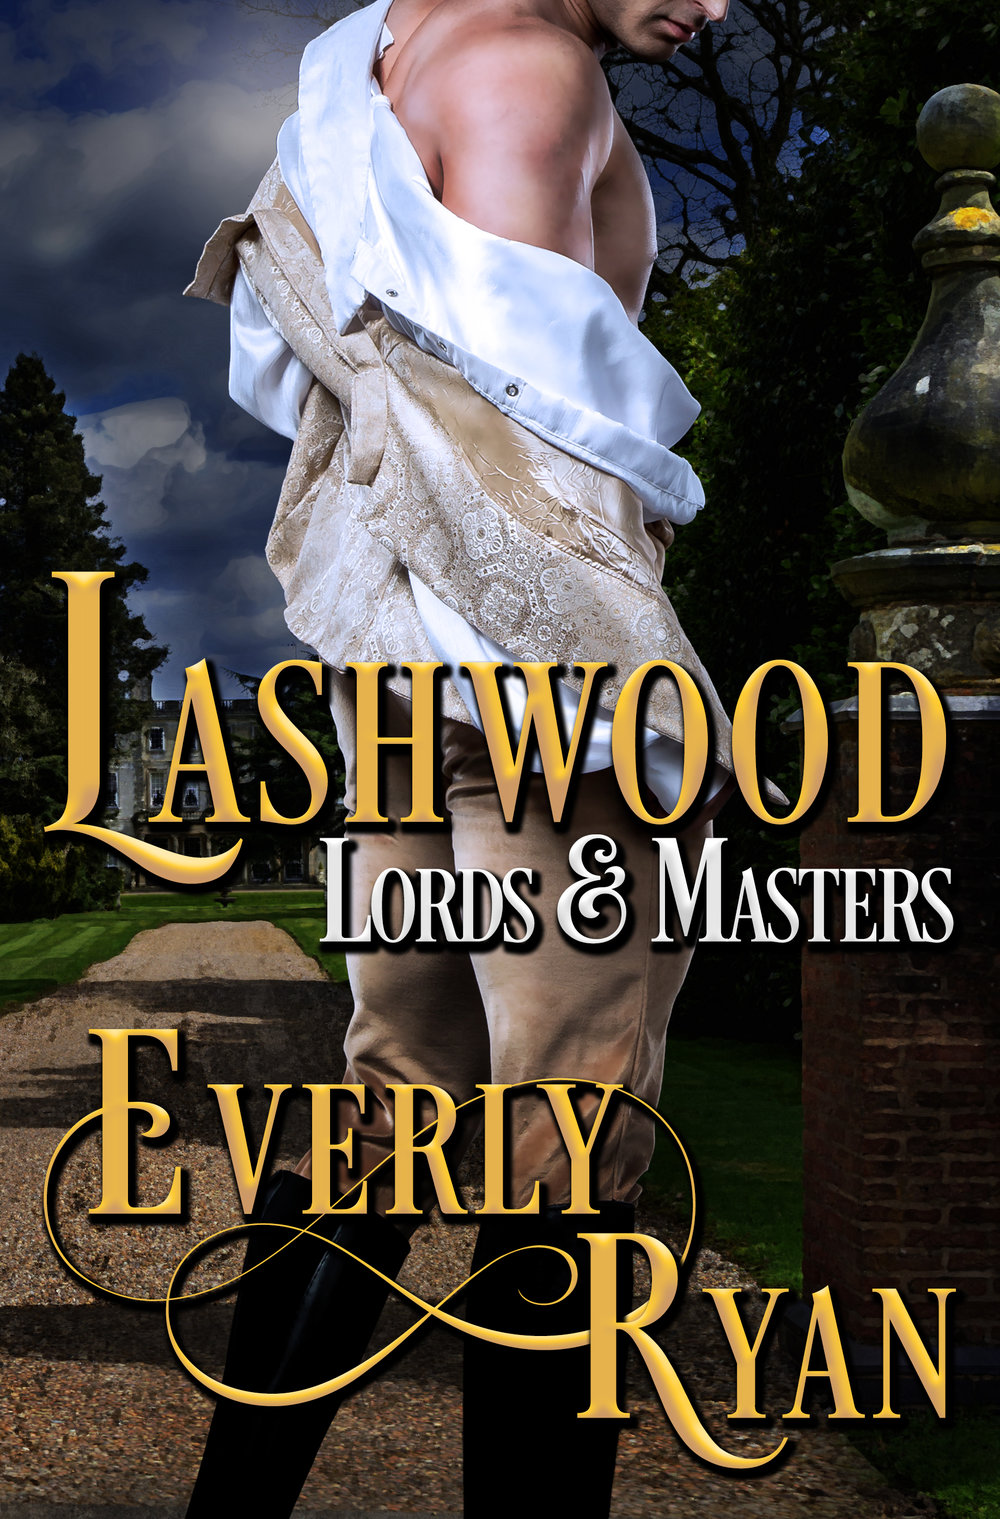 Book 2 in the Lords & Masters Series